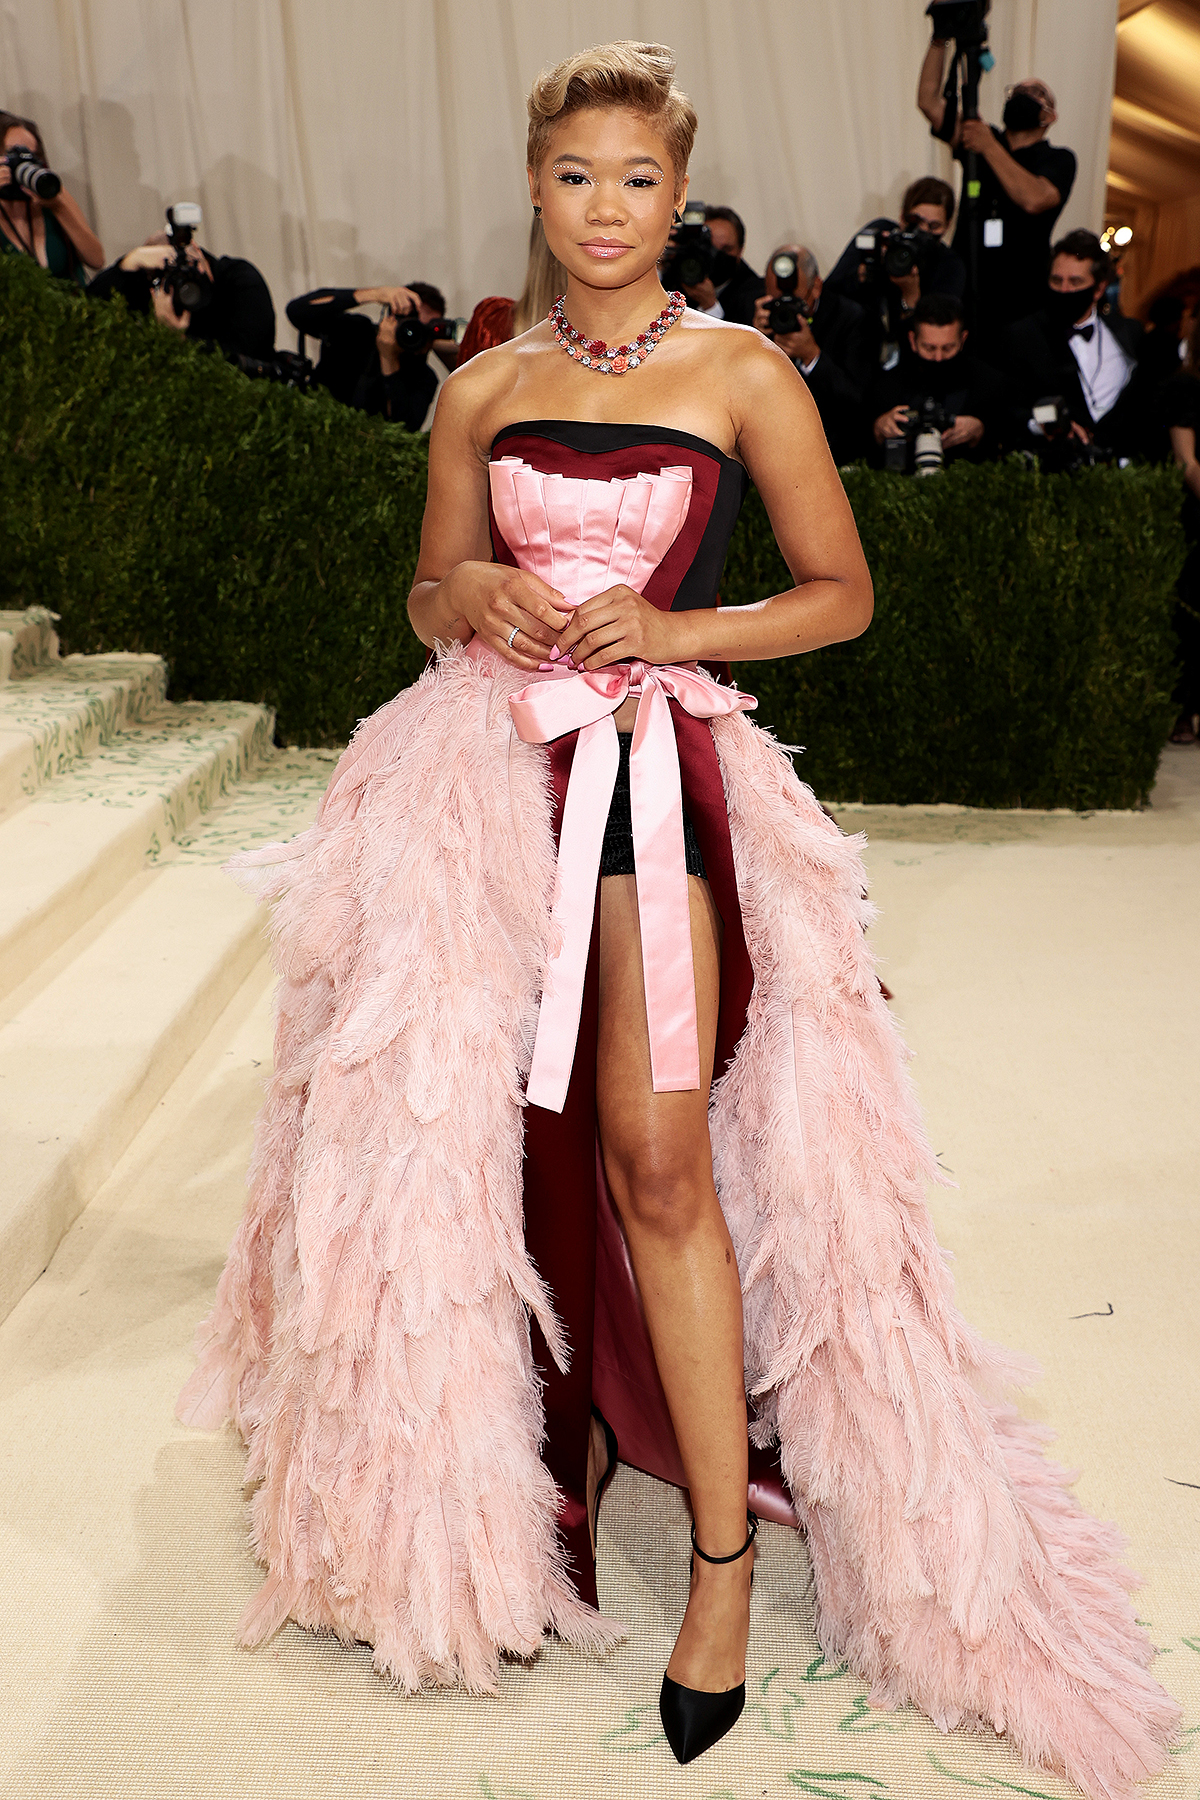 Storm Reid attends The 2021 Met Gala Celebrating In America: A Lexicon Of Fashion at Metropolitan Museum of Art on September 13, 2021